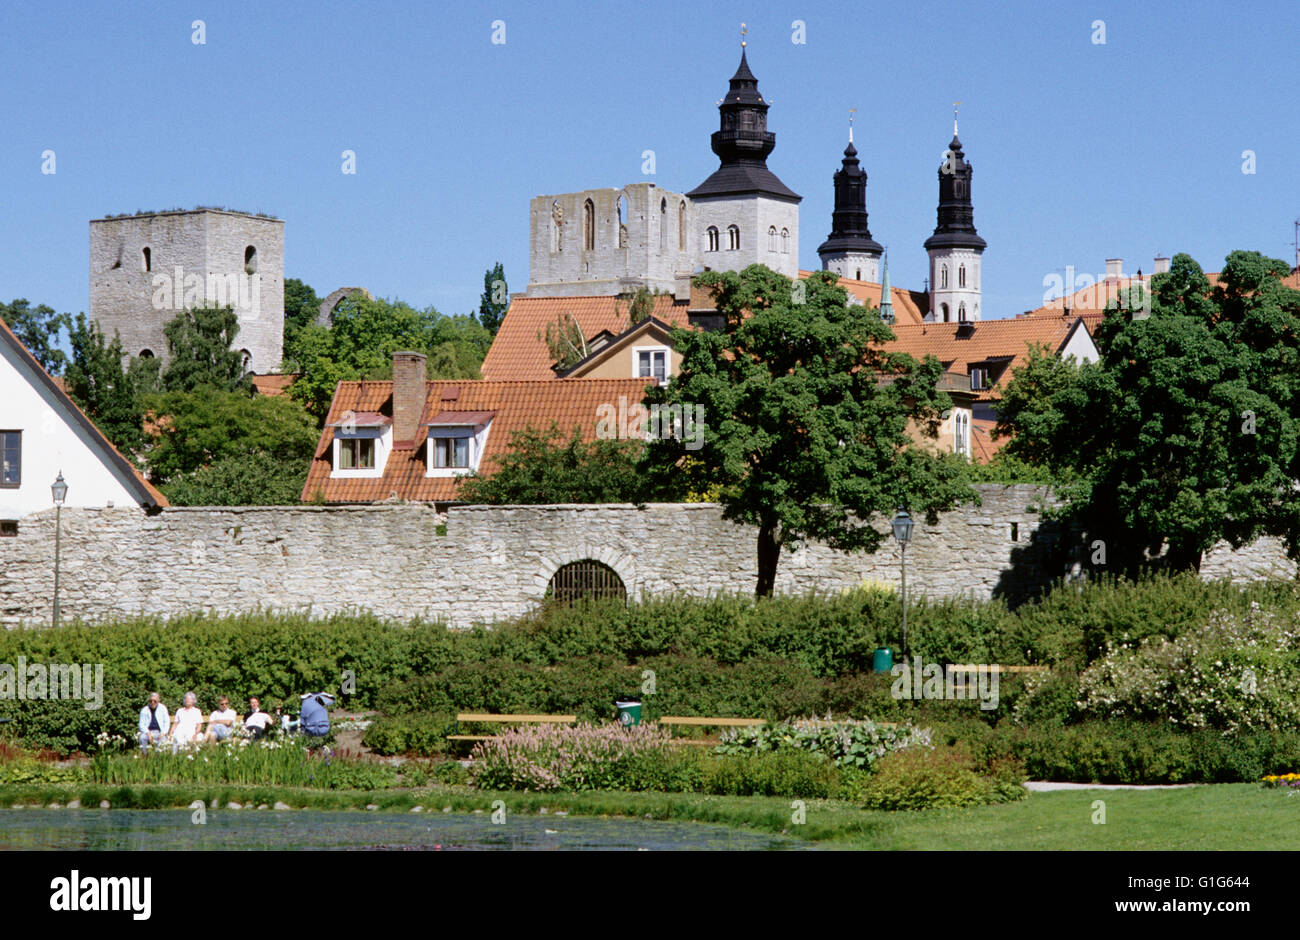 VISBY Gotland from the south - Stock Image